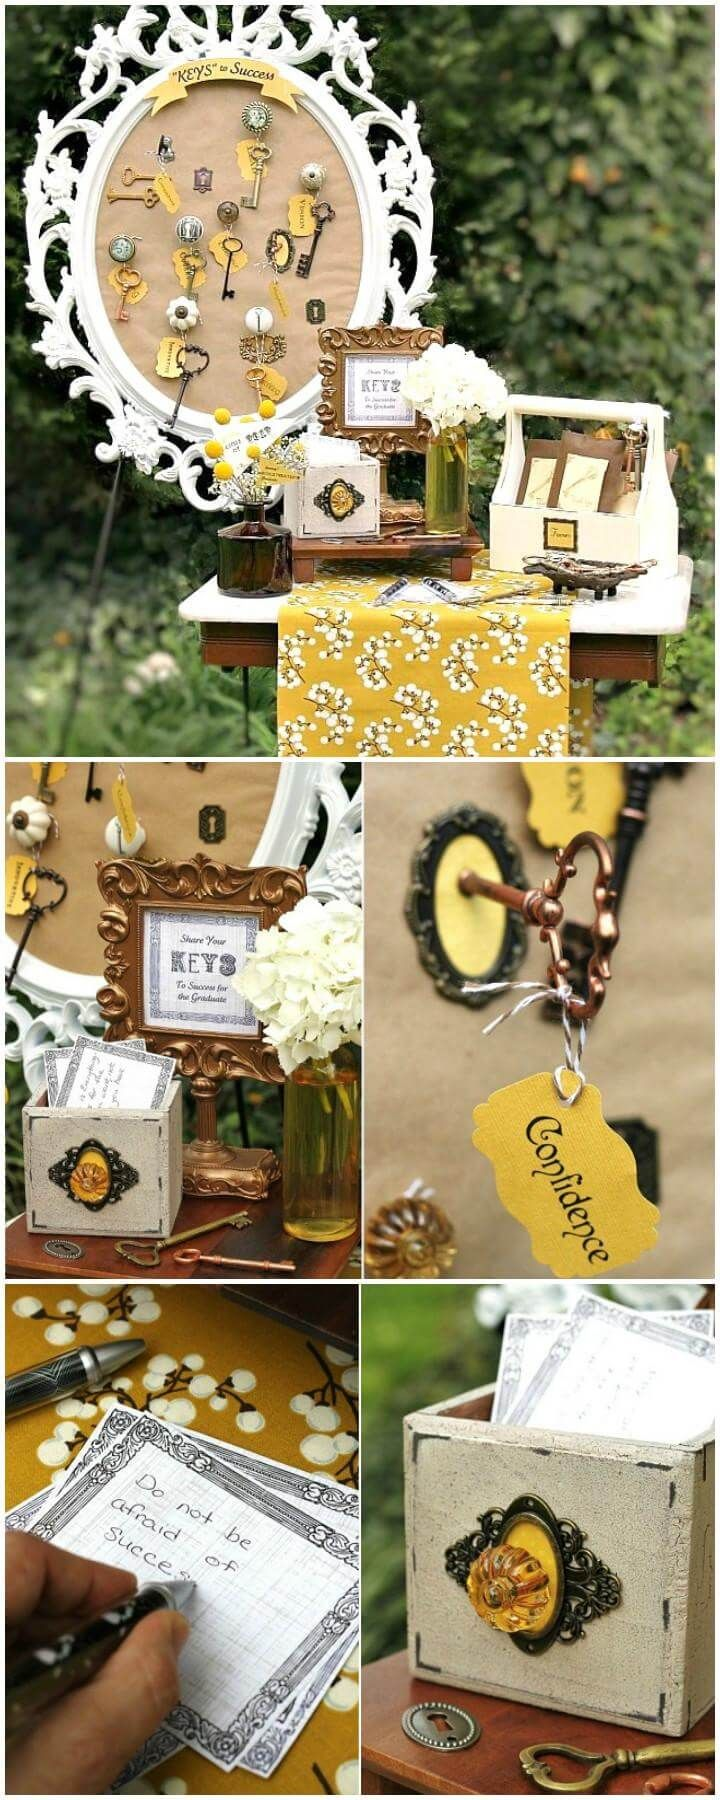 101 ideas for graduation parties that you have not seen at graduation parties